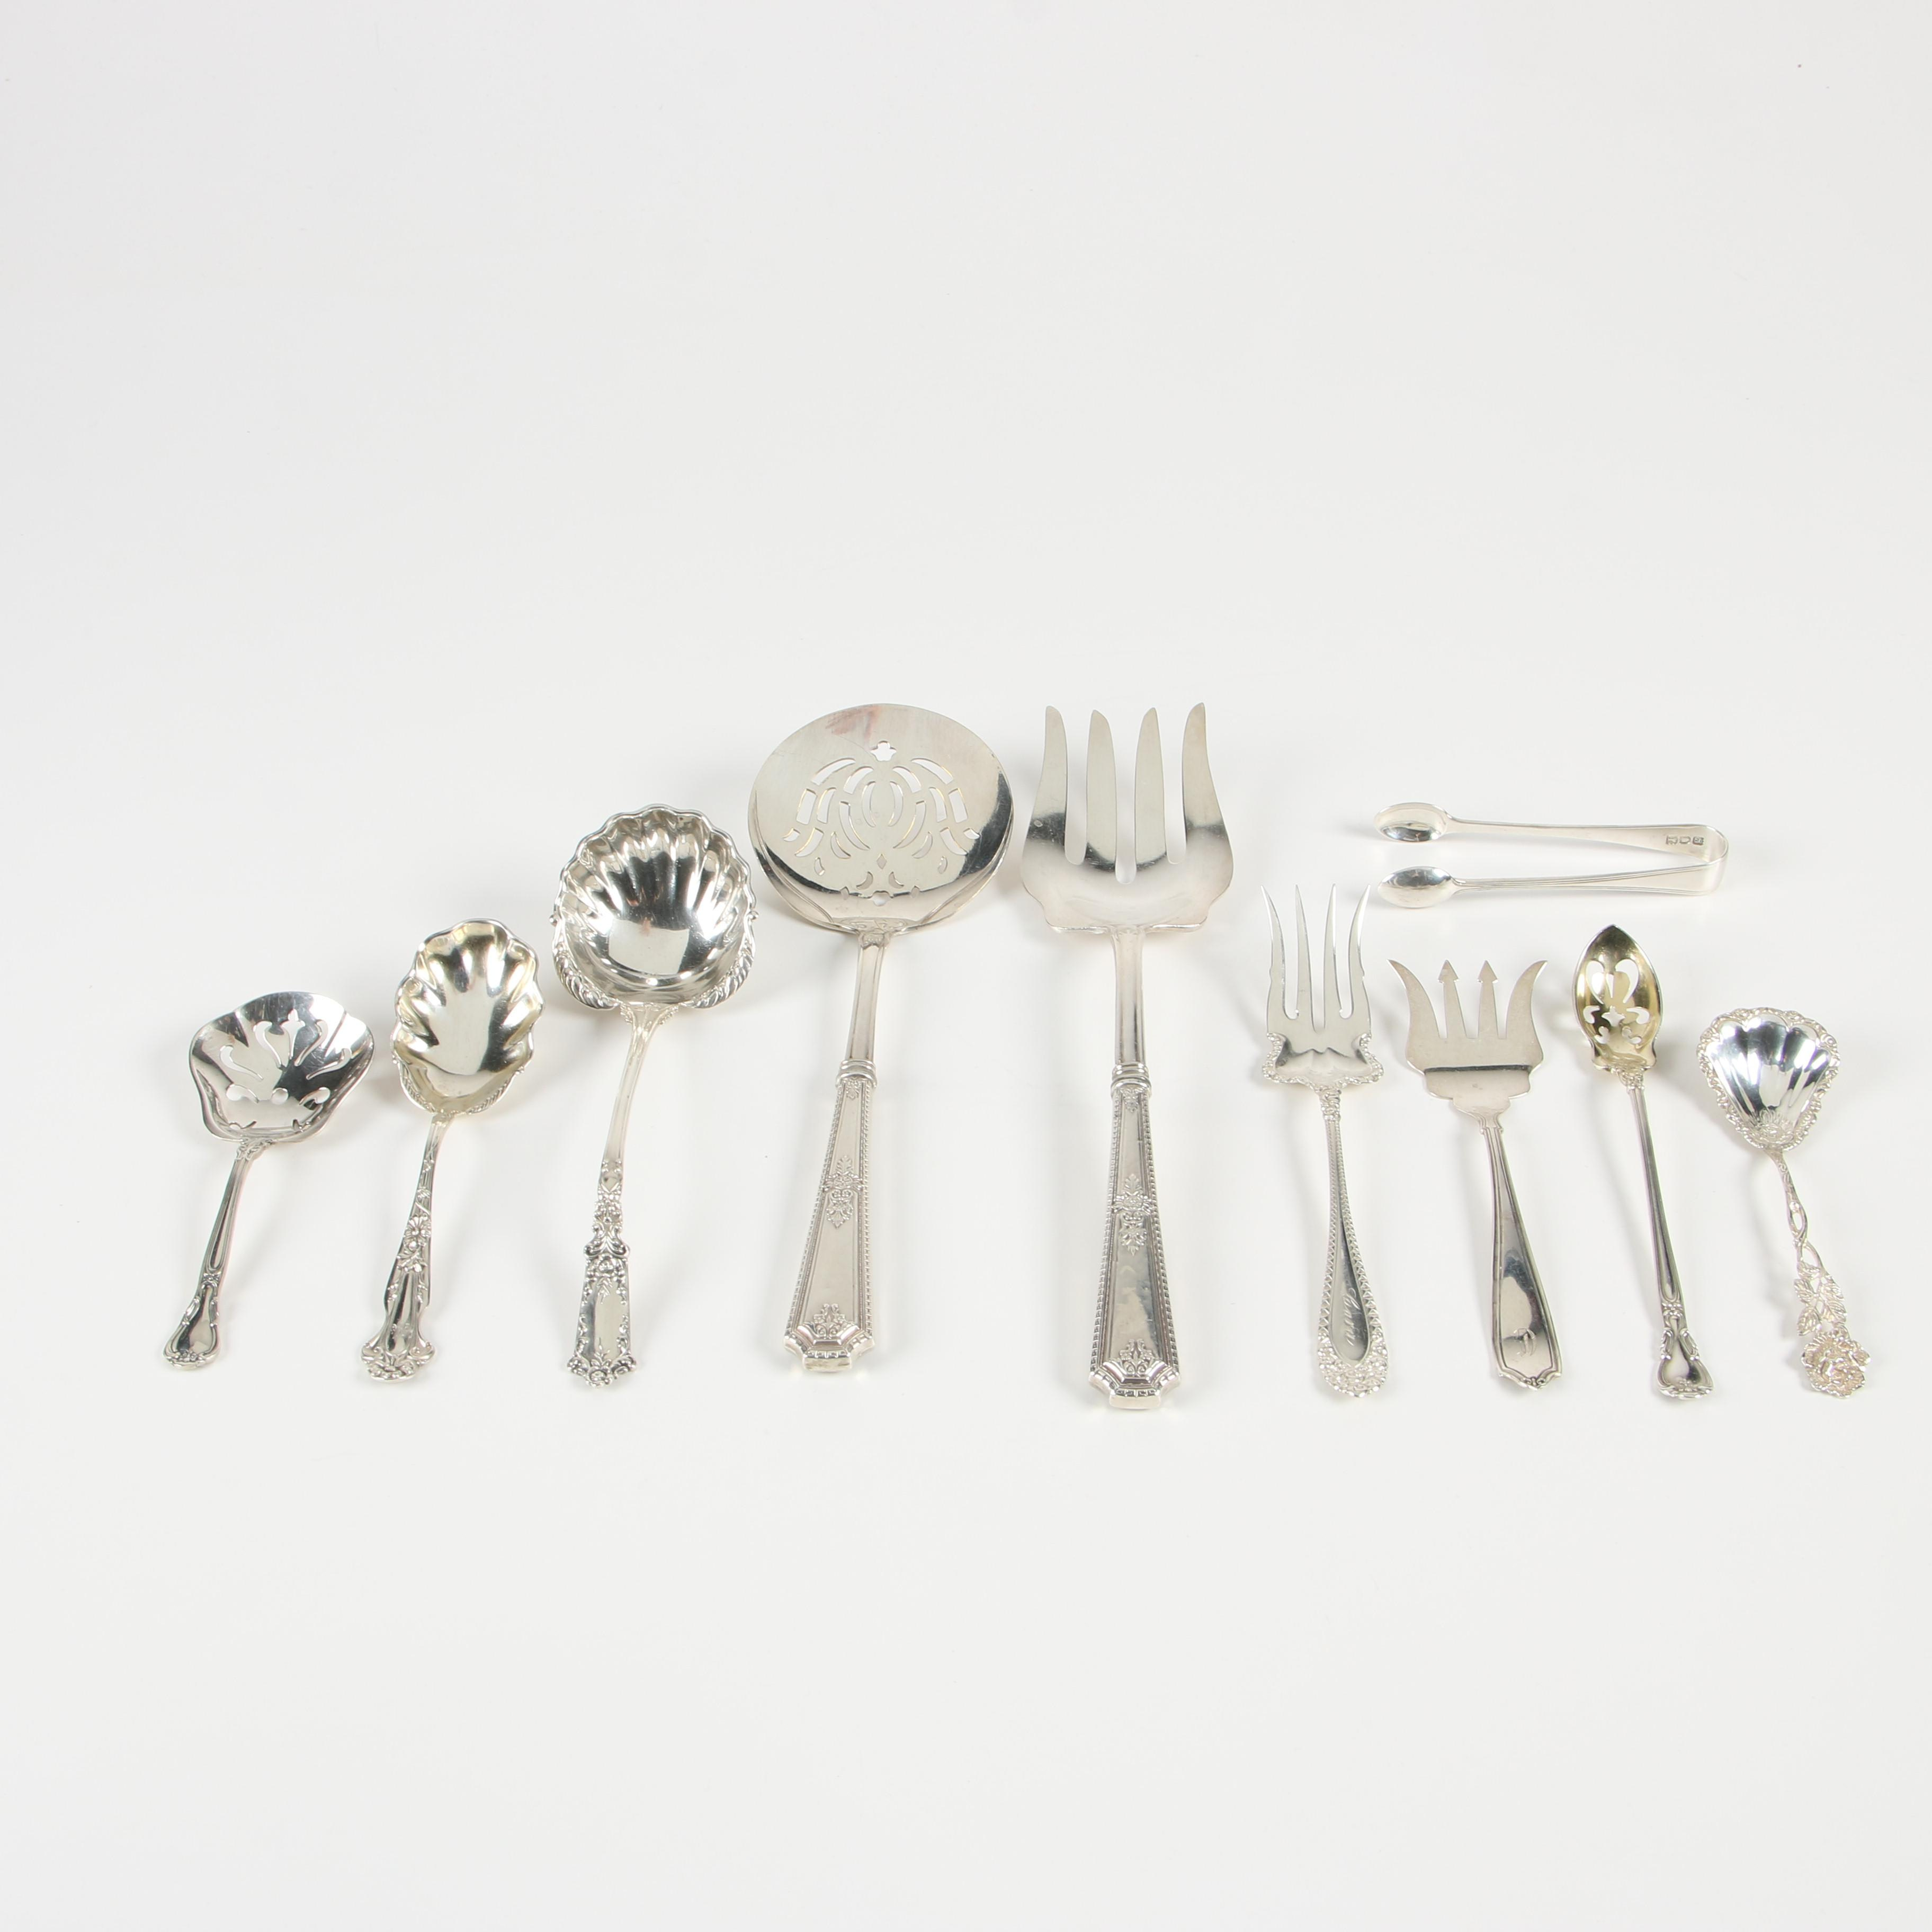 American, English and German Sterling Silver Serving Utensils